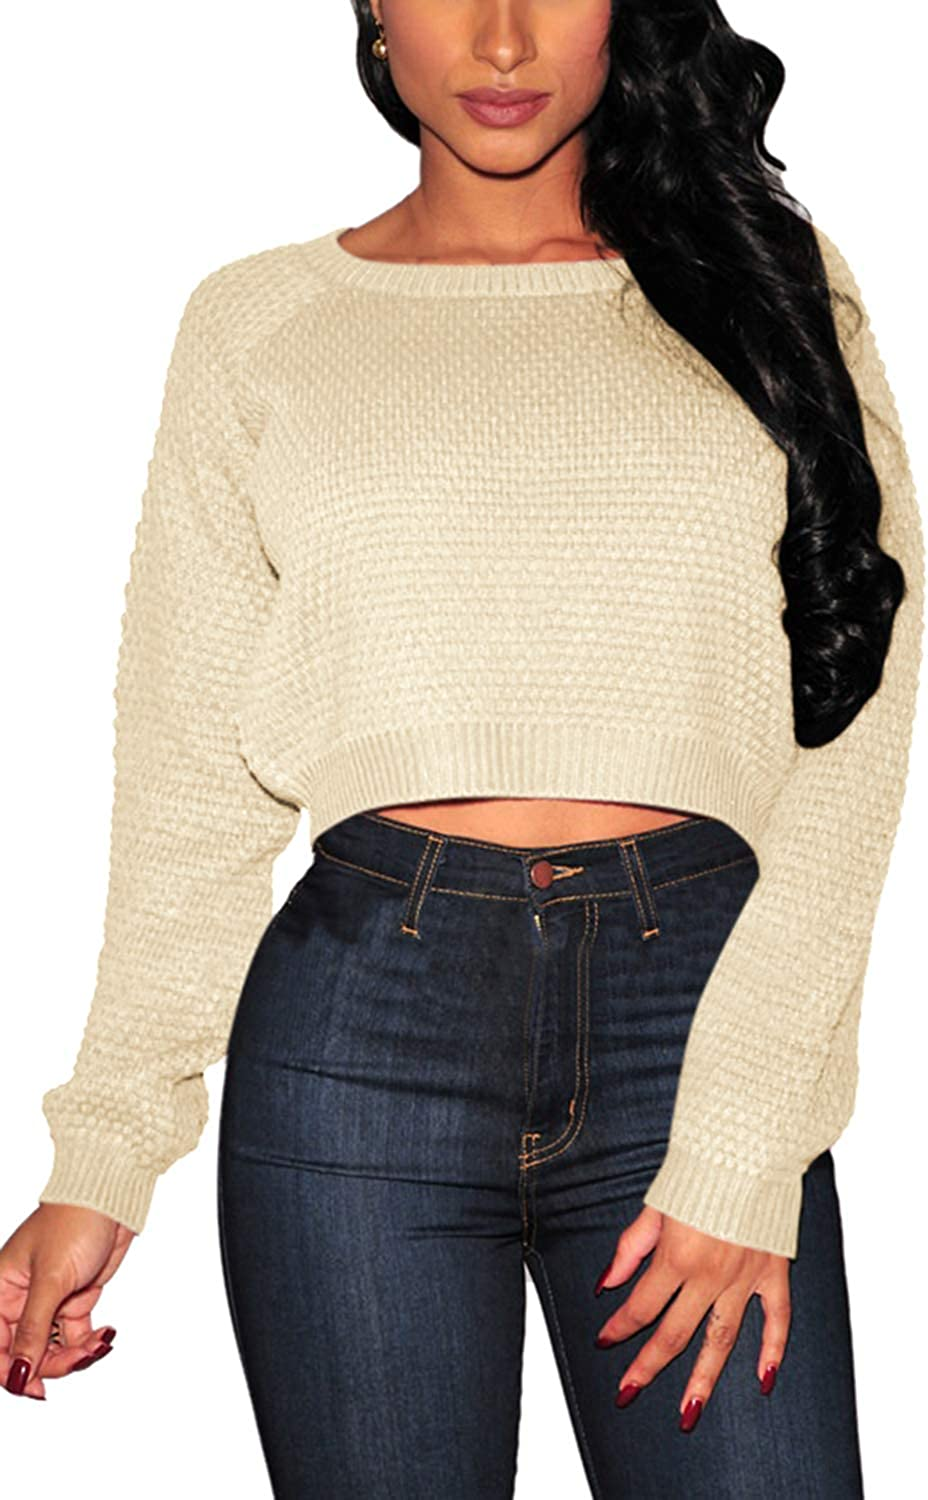 Pink Queen Women's Knit Long Sleeves Cropped Sweater Top